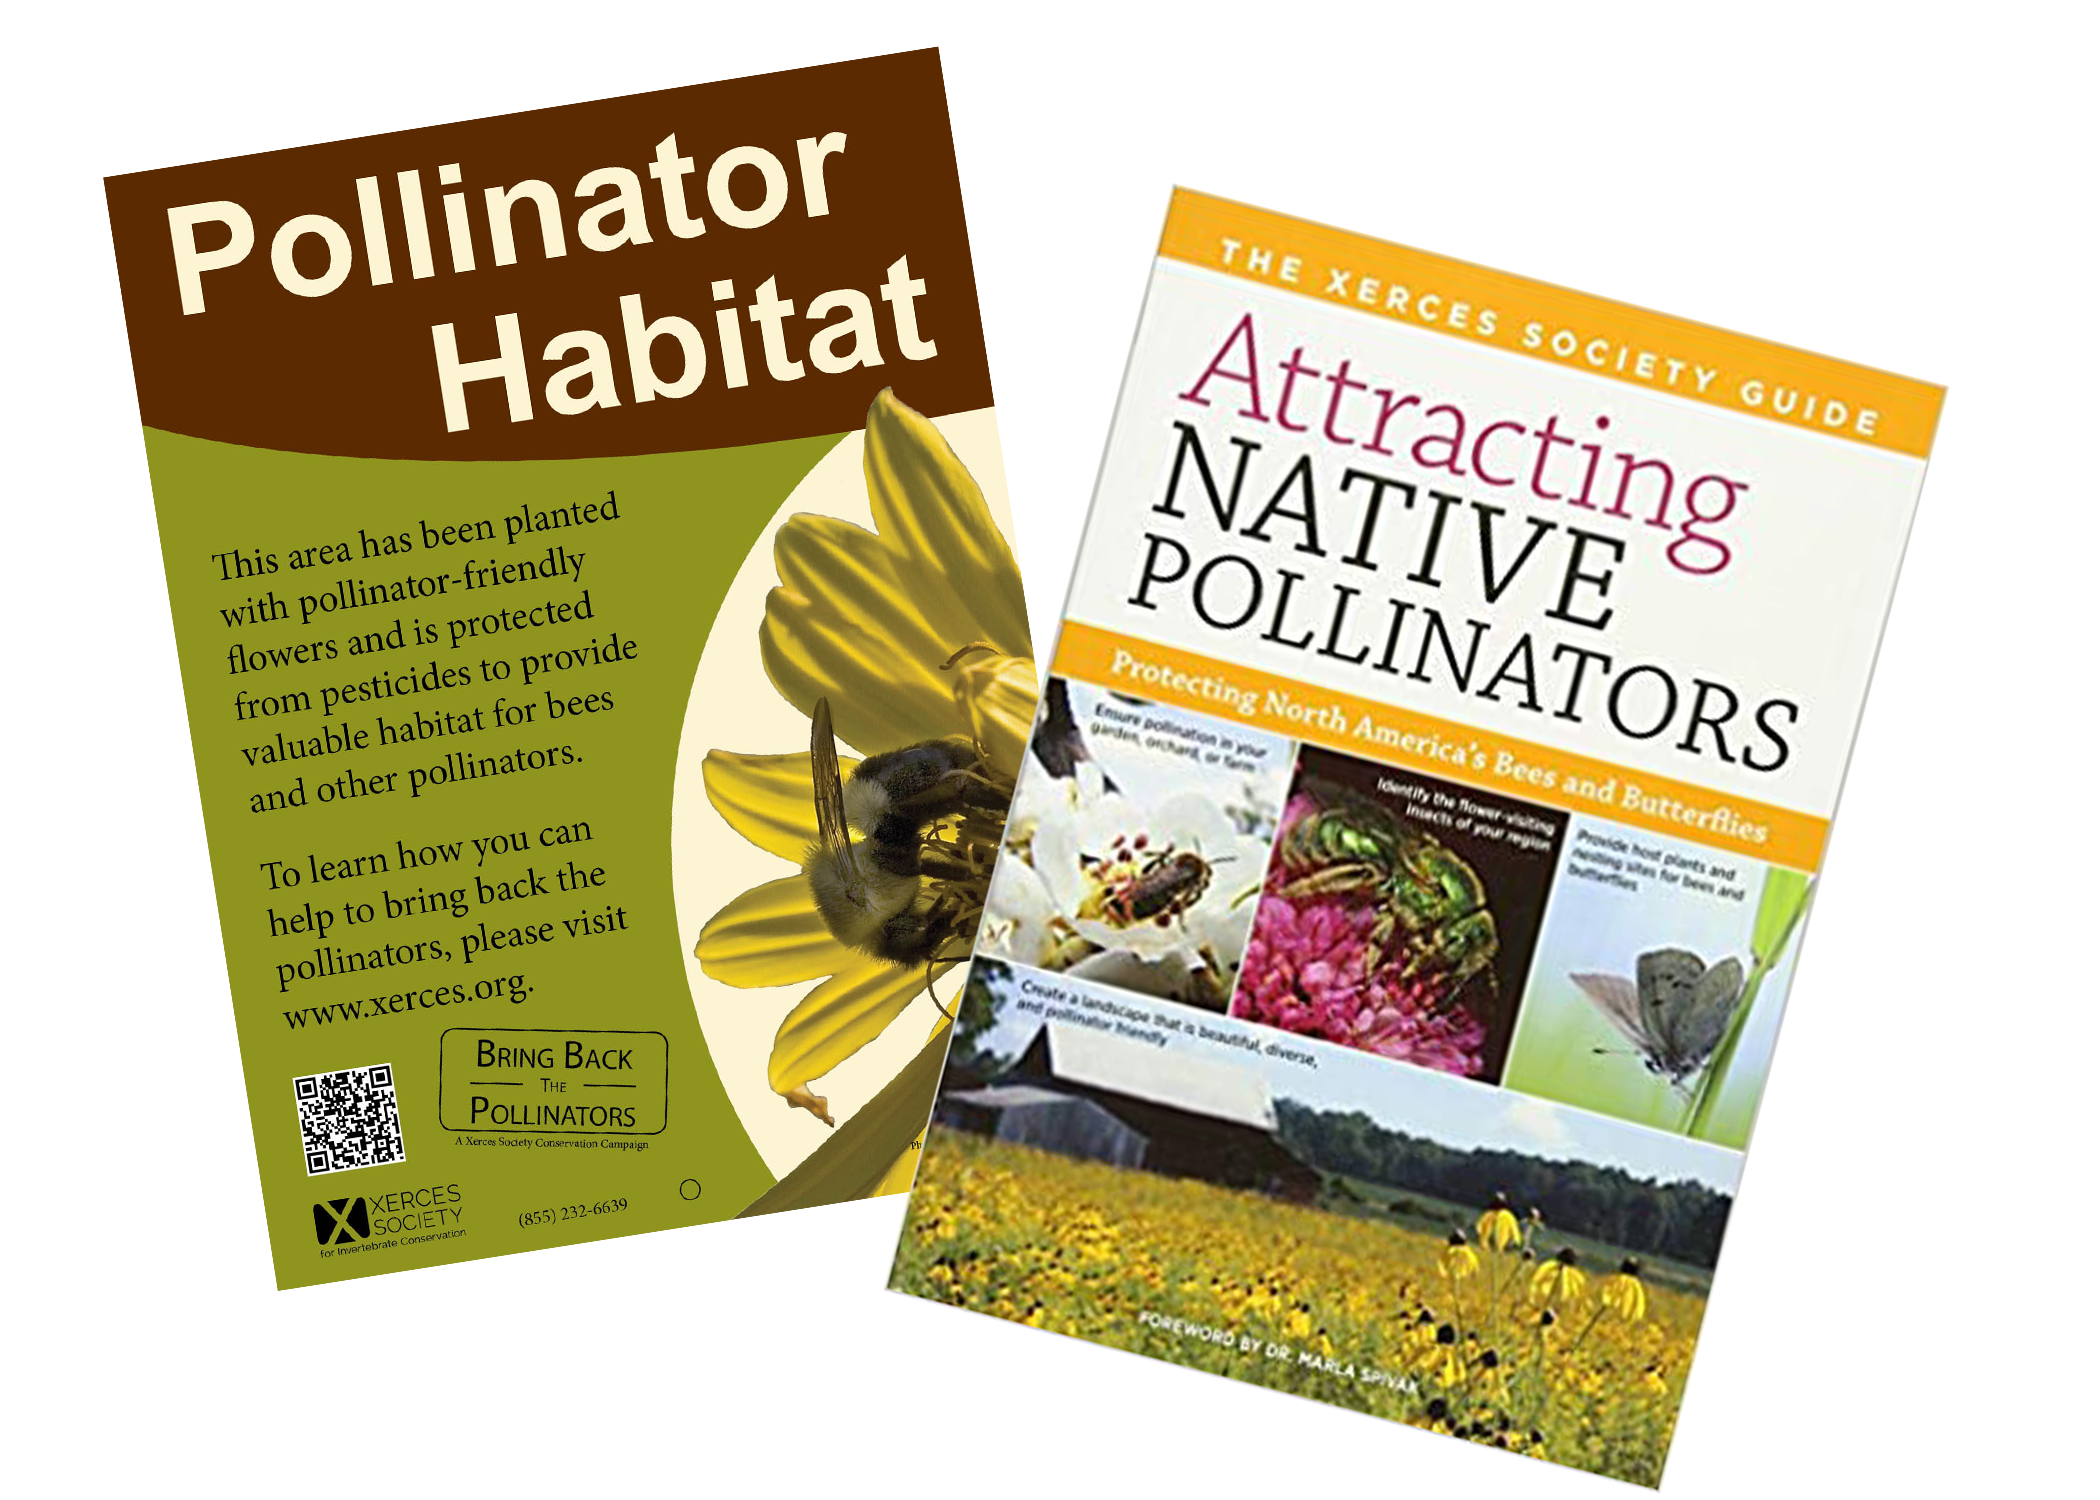 A Xerces Society Pollinator Habitat sign and the cover of the book Attracting Native Pollinators are shown.